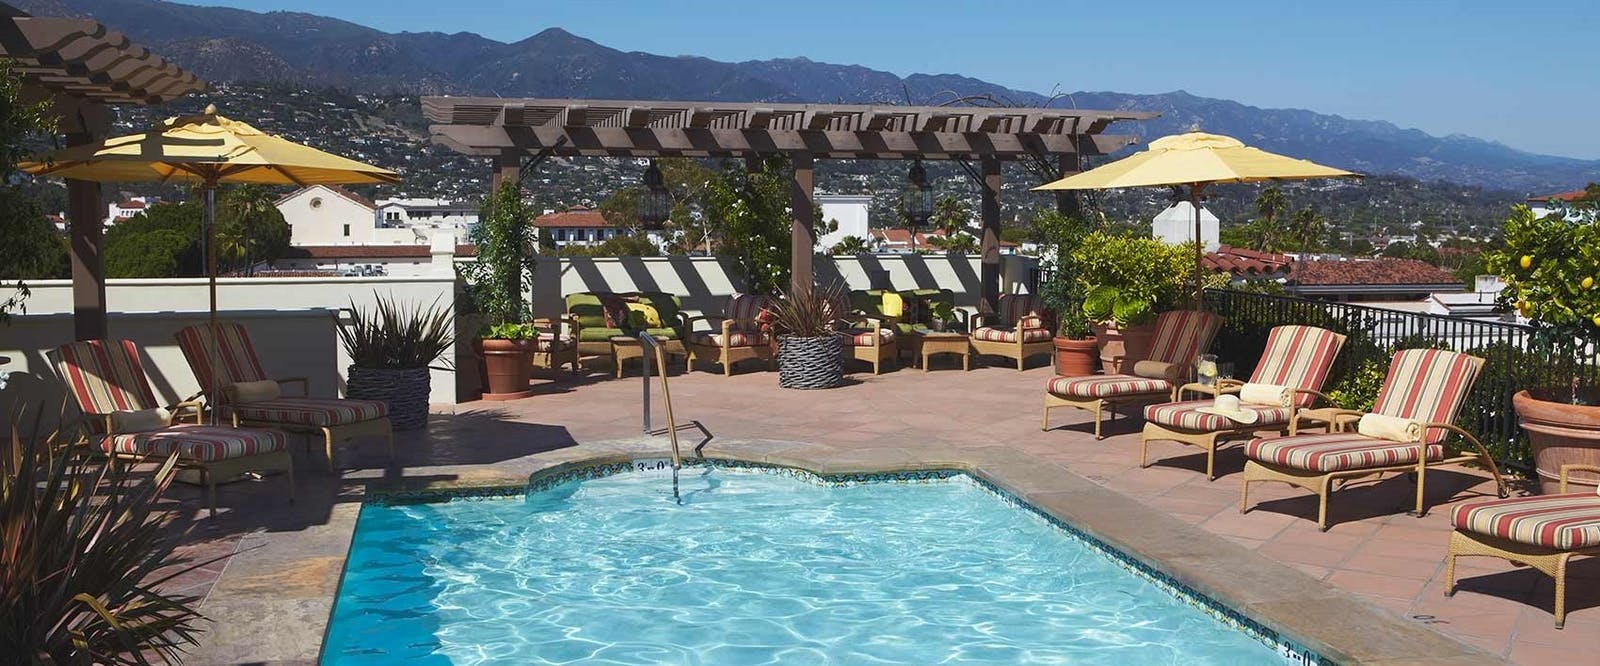 Rooftop Pool at Kimpton Canary Hotel, Santa Barbara